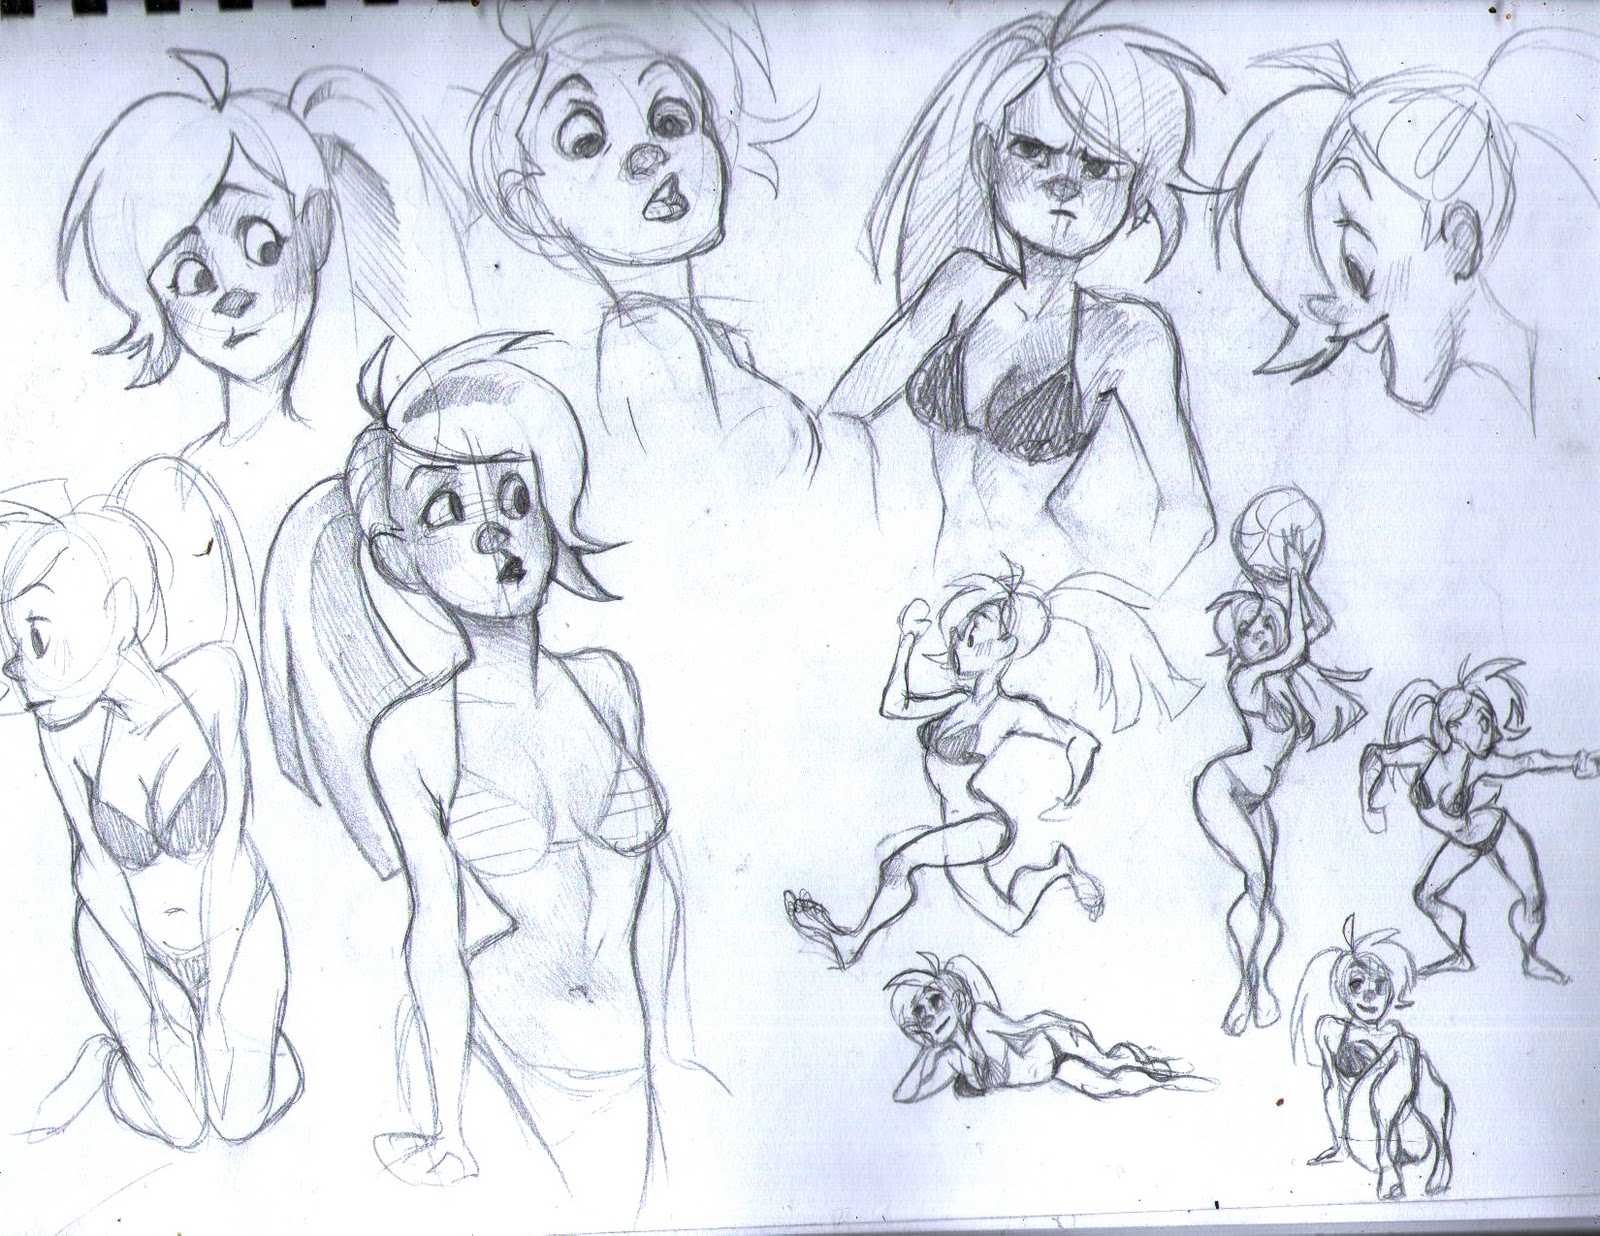 NatSmall's sketchbook or something (nudity)